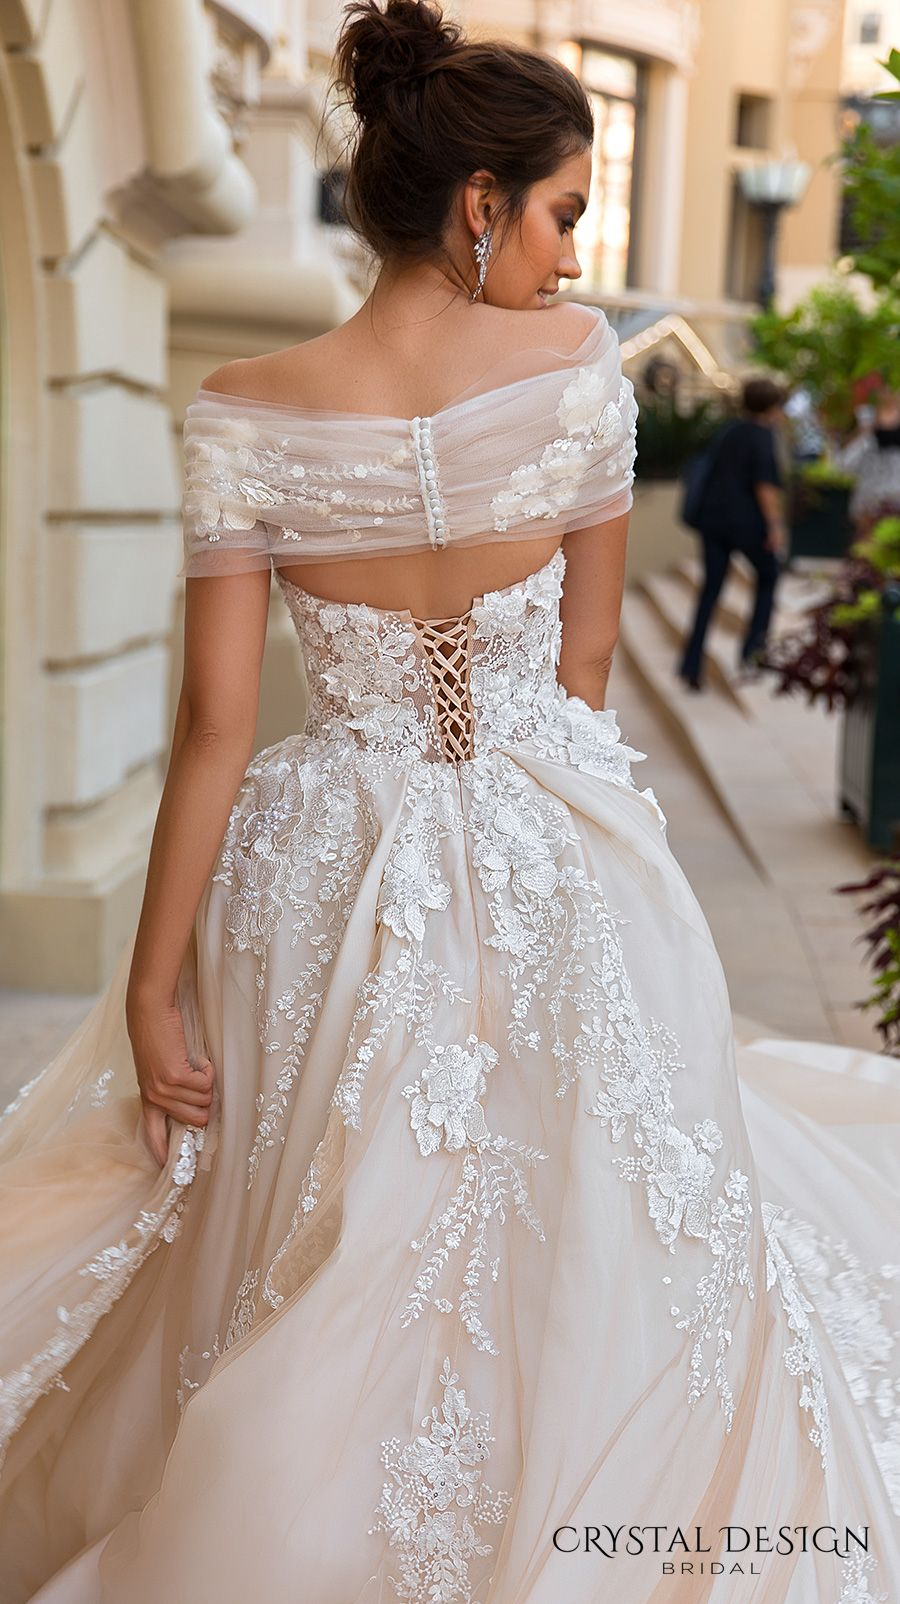 Crystal design 2017 bridal off the shoulder wrap sweetheart crystal design 2017 wedding dresses haute couture bridal collection junglespirit Images